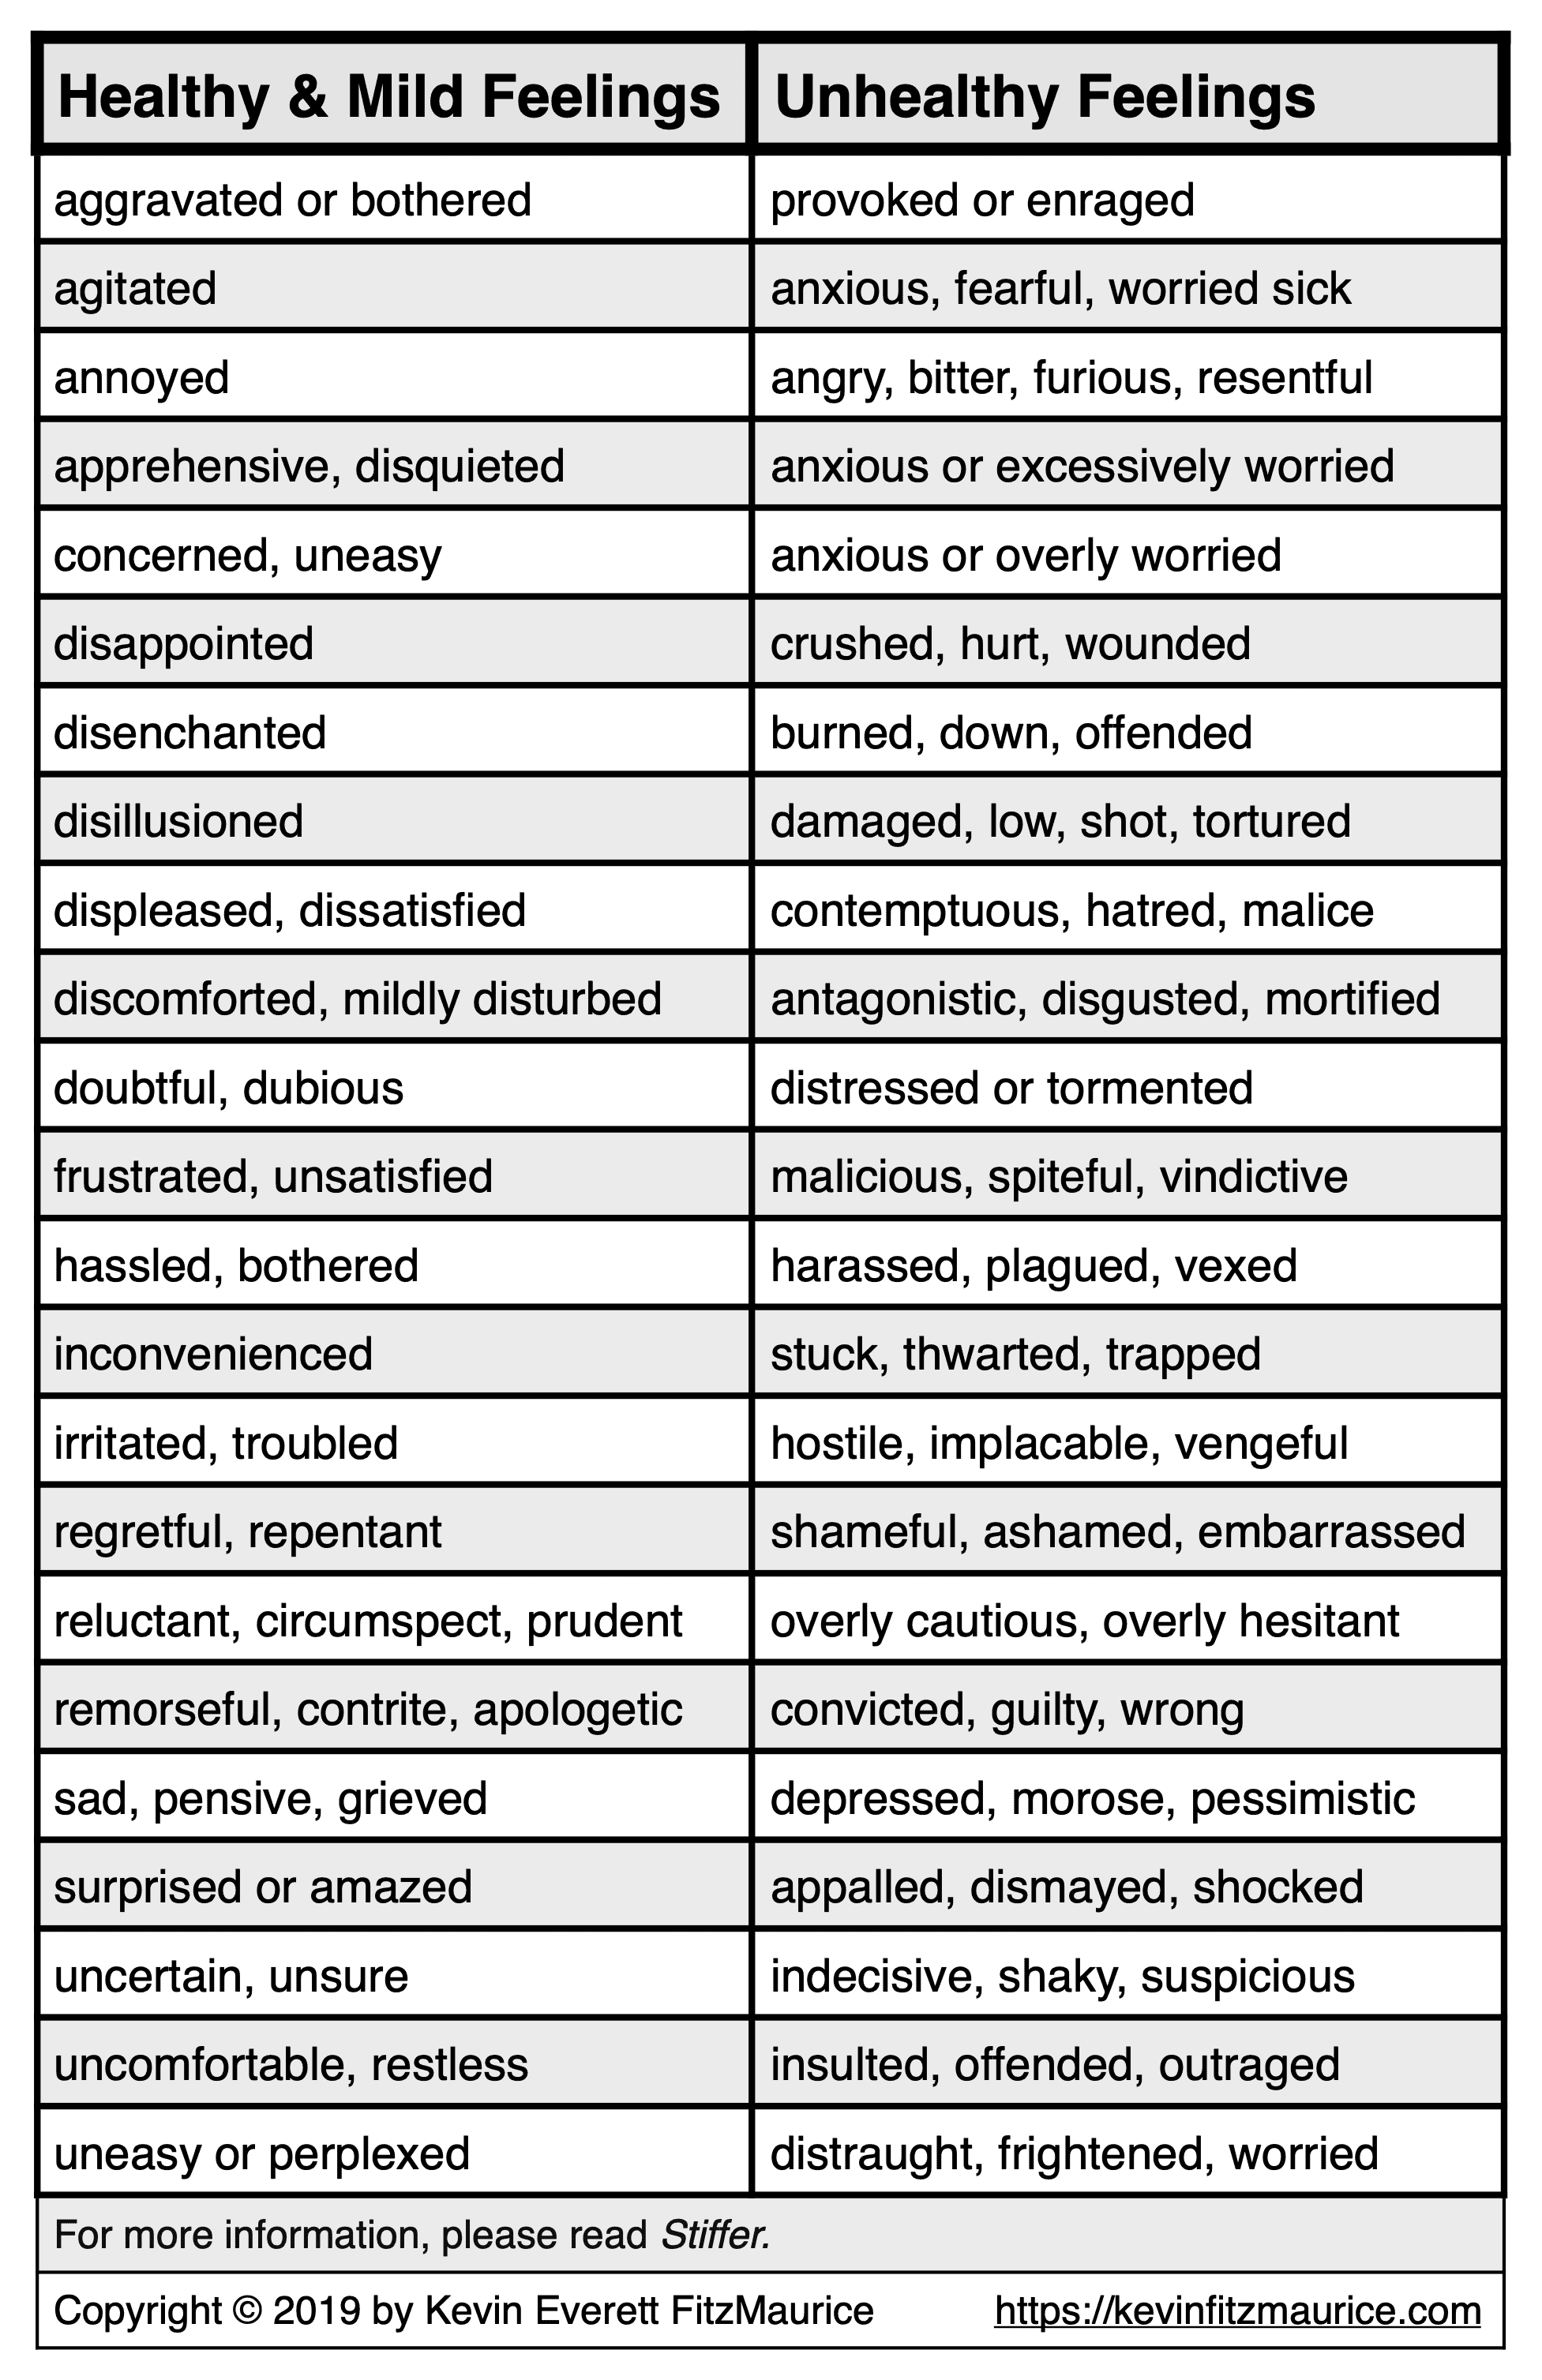 Table Contrasting Healthy and Unhealthy Feelings